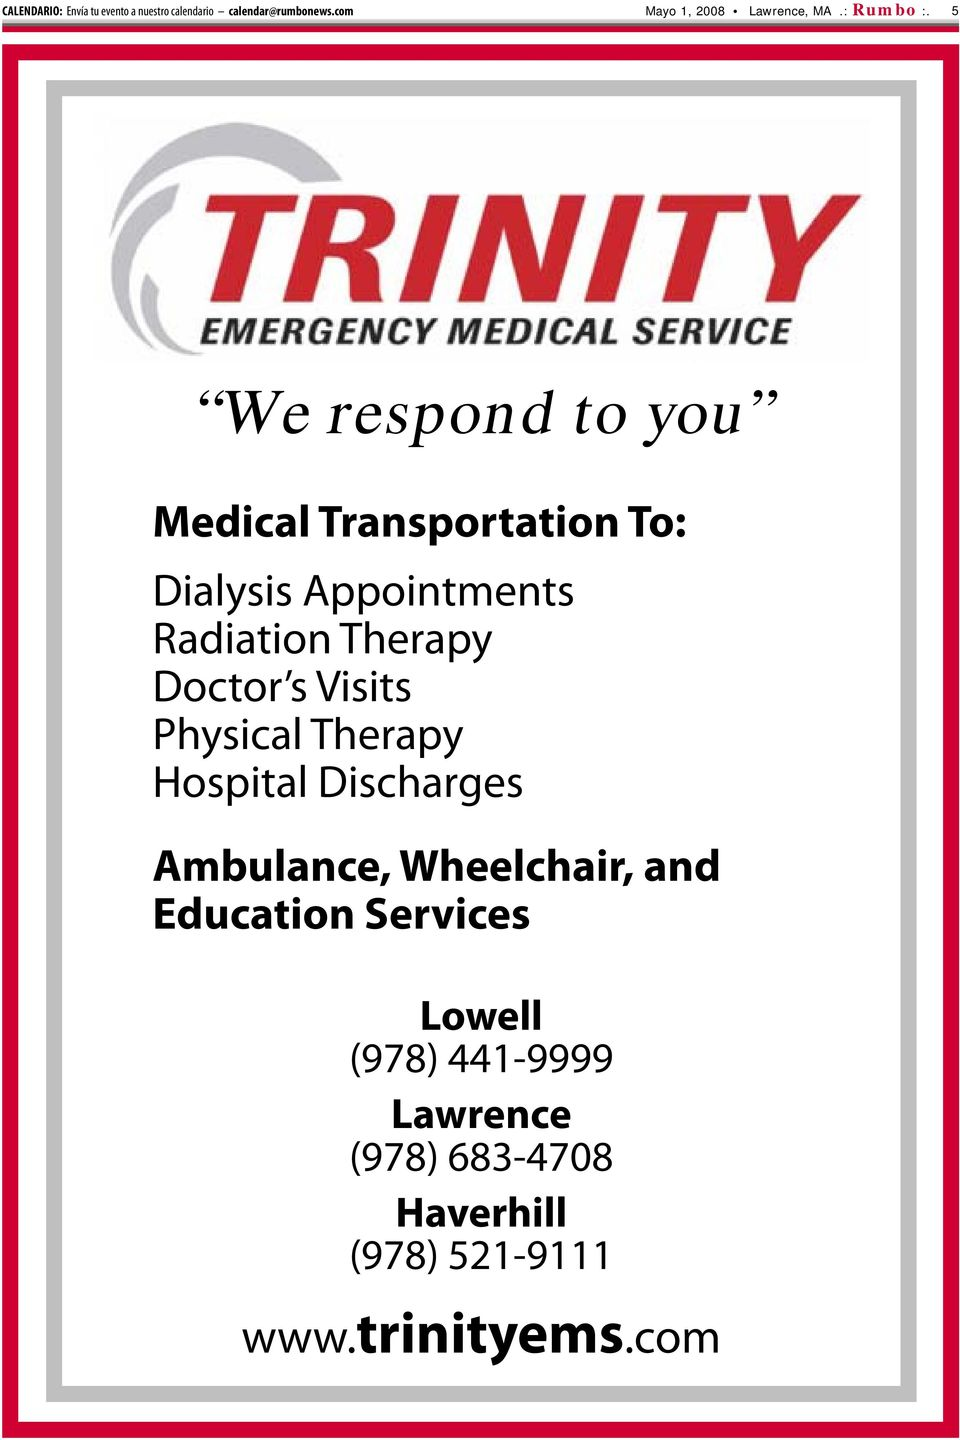 5 We respond to you Medical Transportation To: Dialysis Appointments Radiation Therapy Doctor s